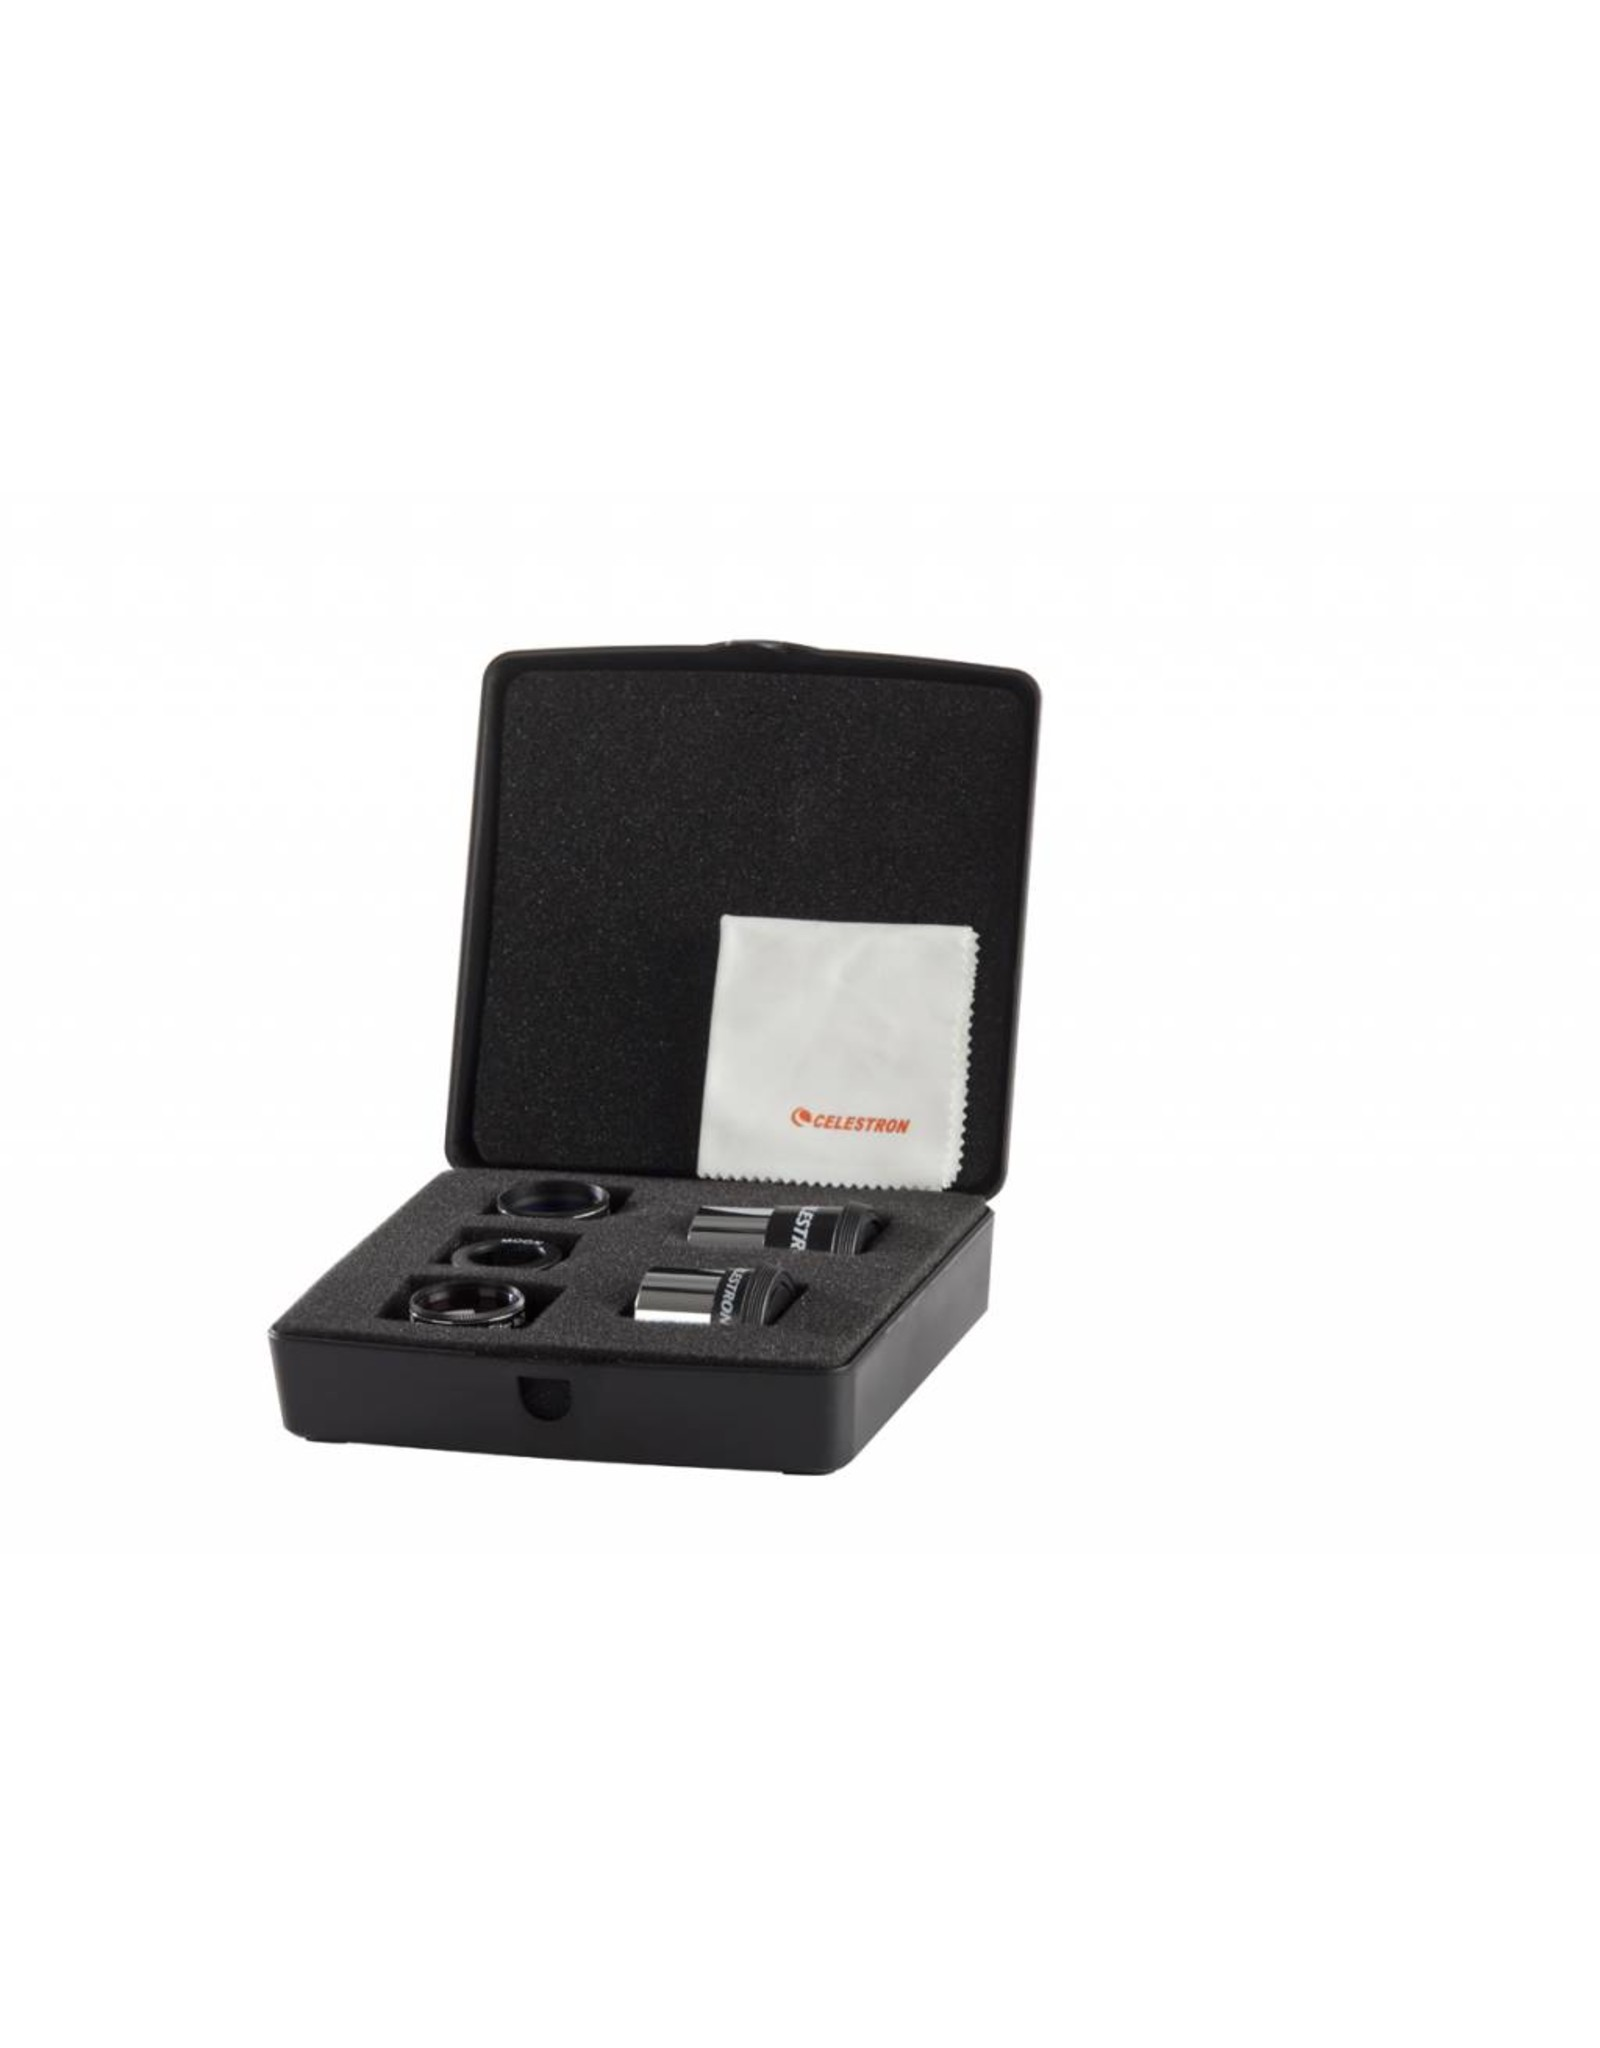 Celestron Celestron Powerseeker Accessory Kit